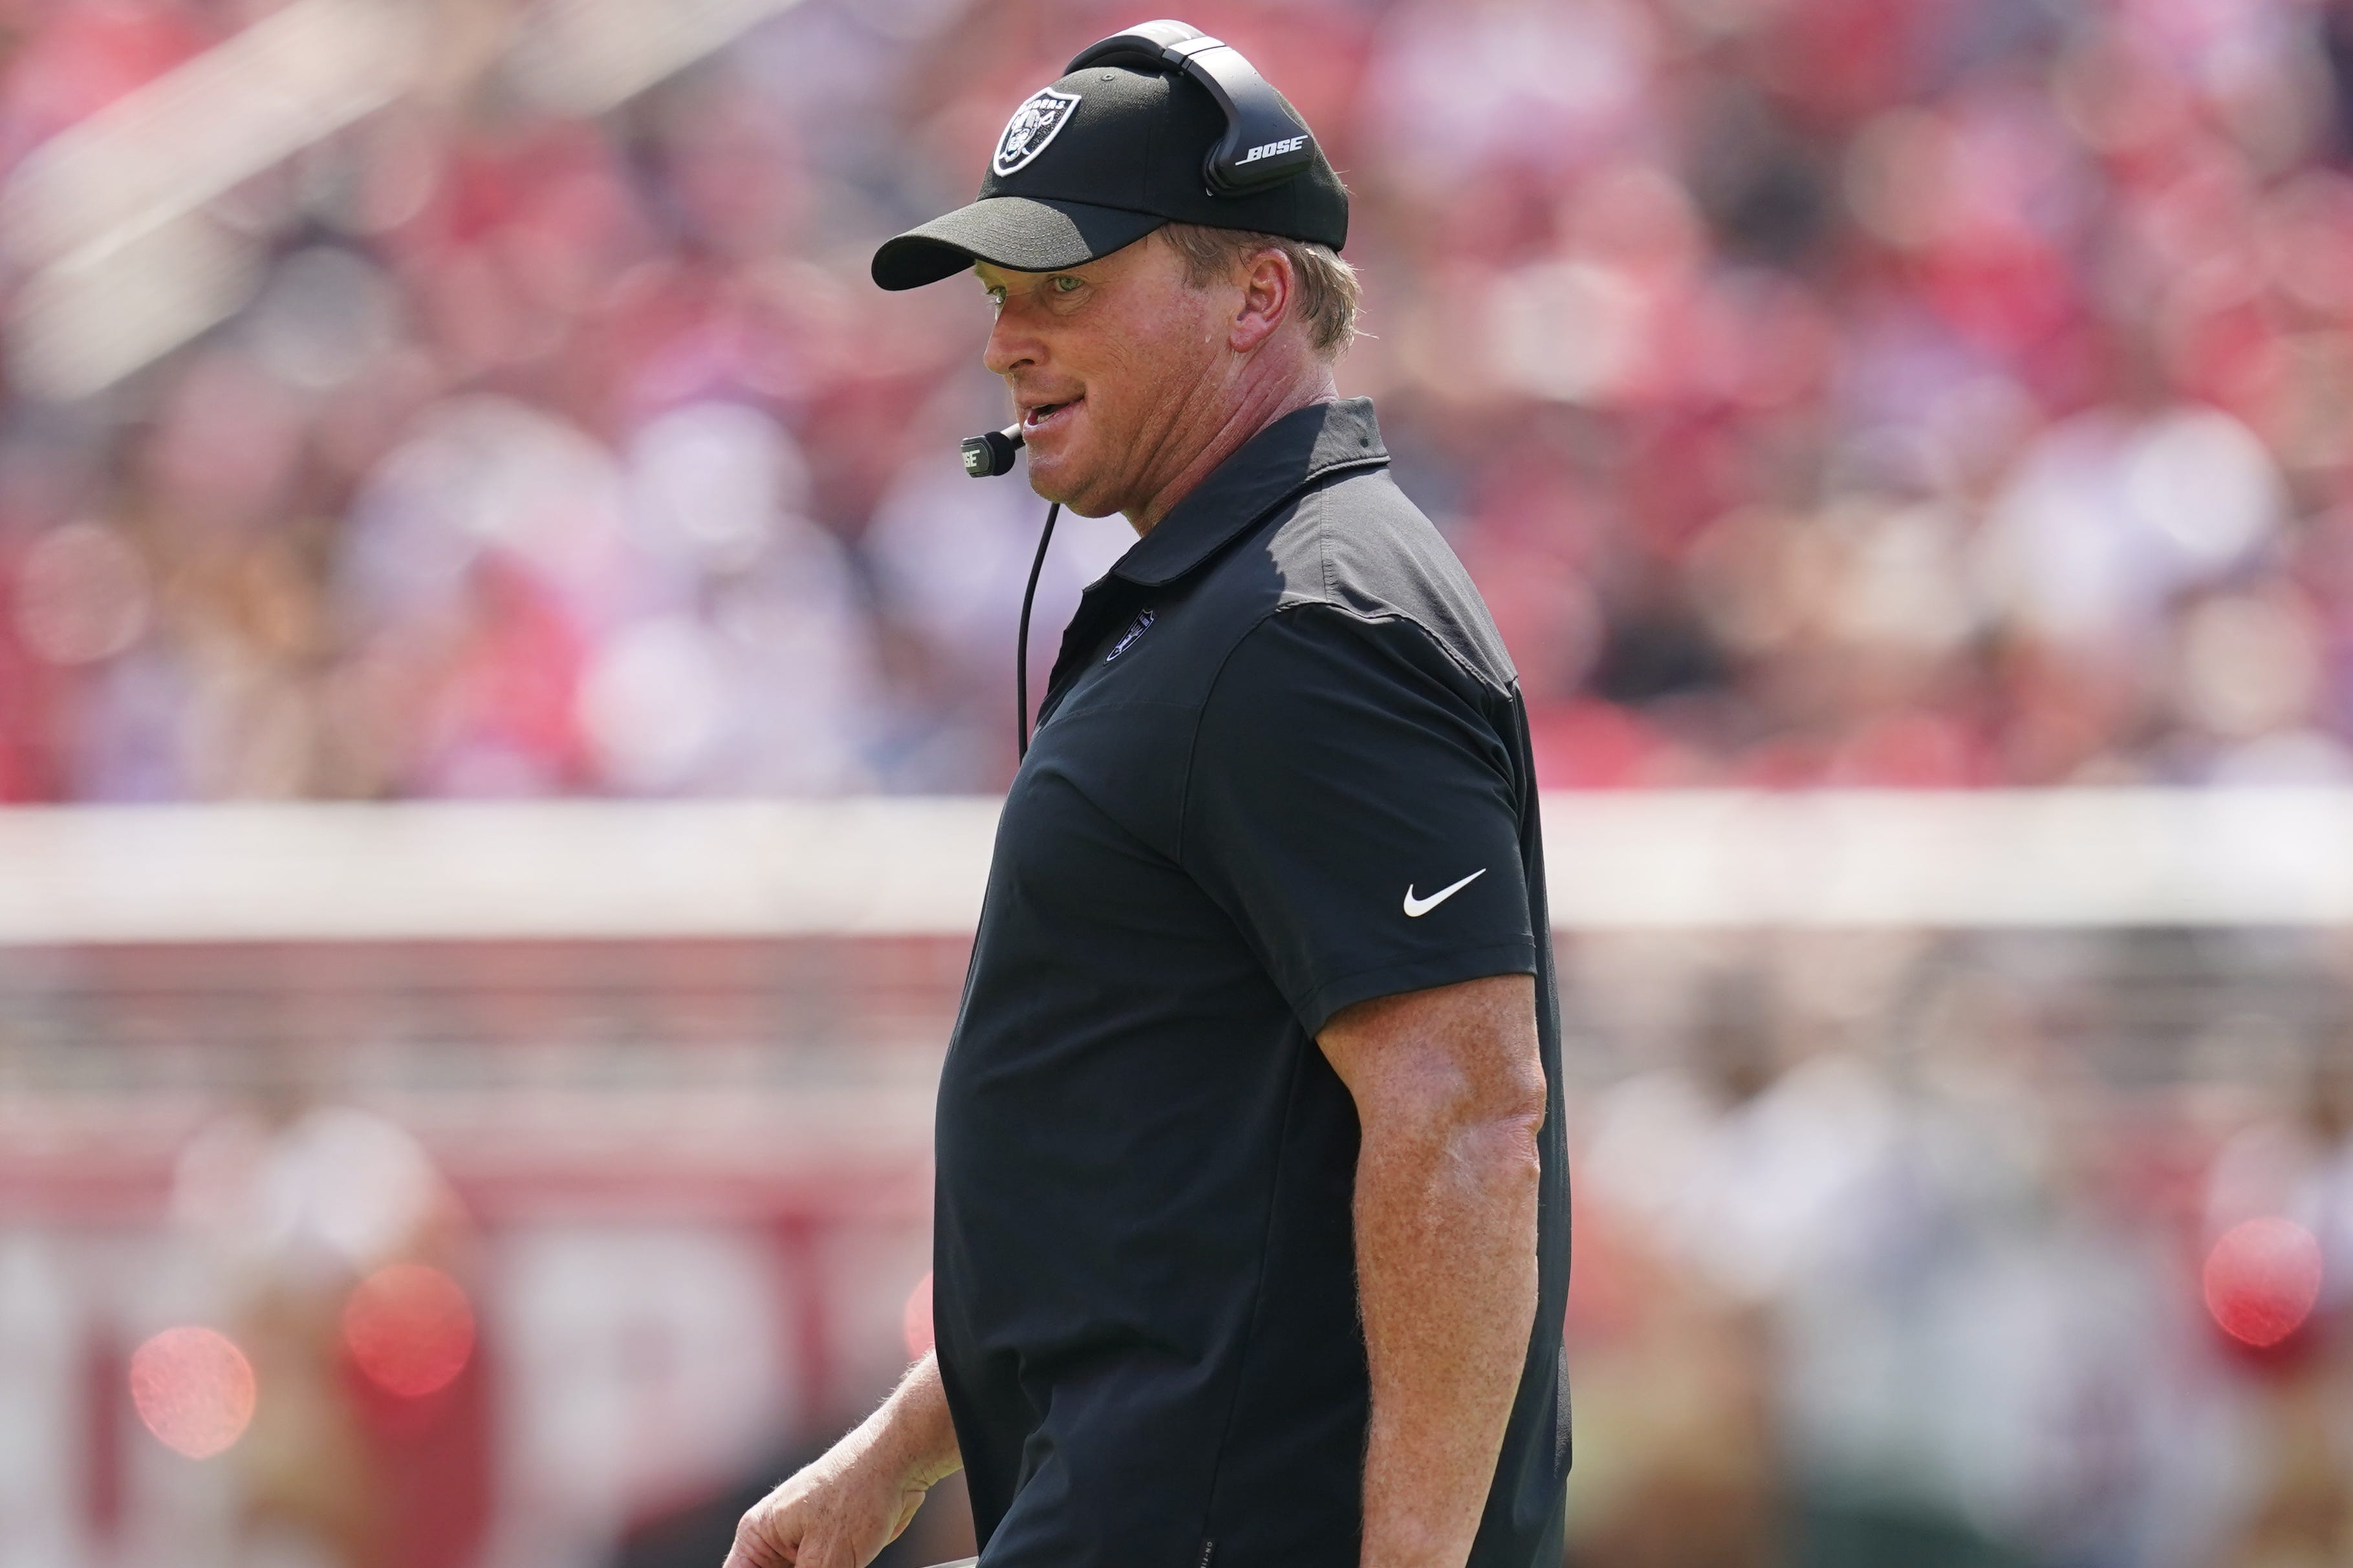 Opinion: Tony Dungy, Mike Tirico should have known better when supporting Jon Gruden